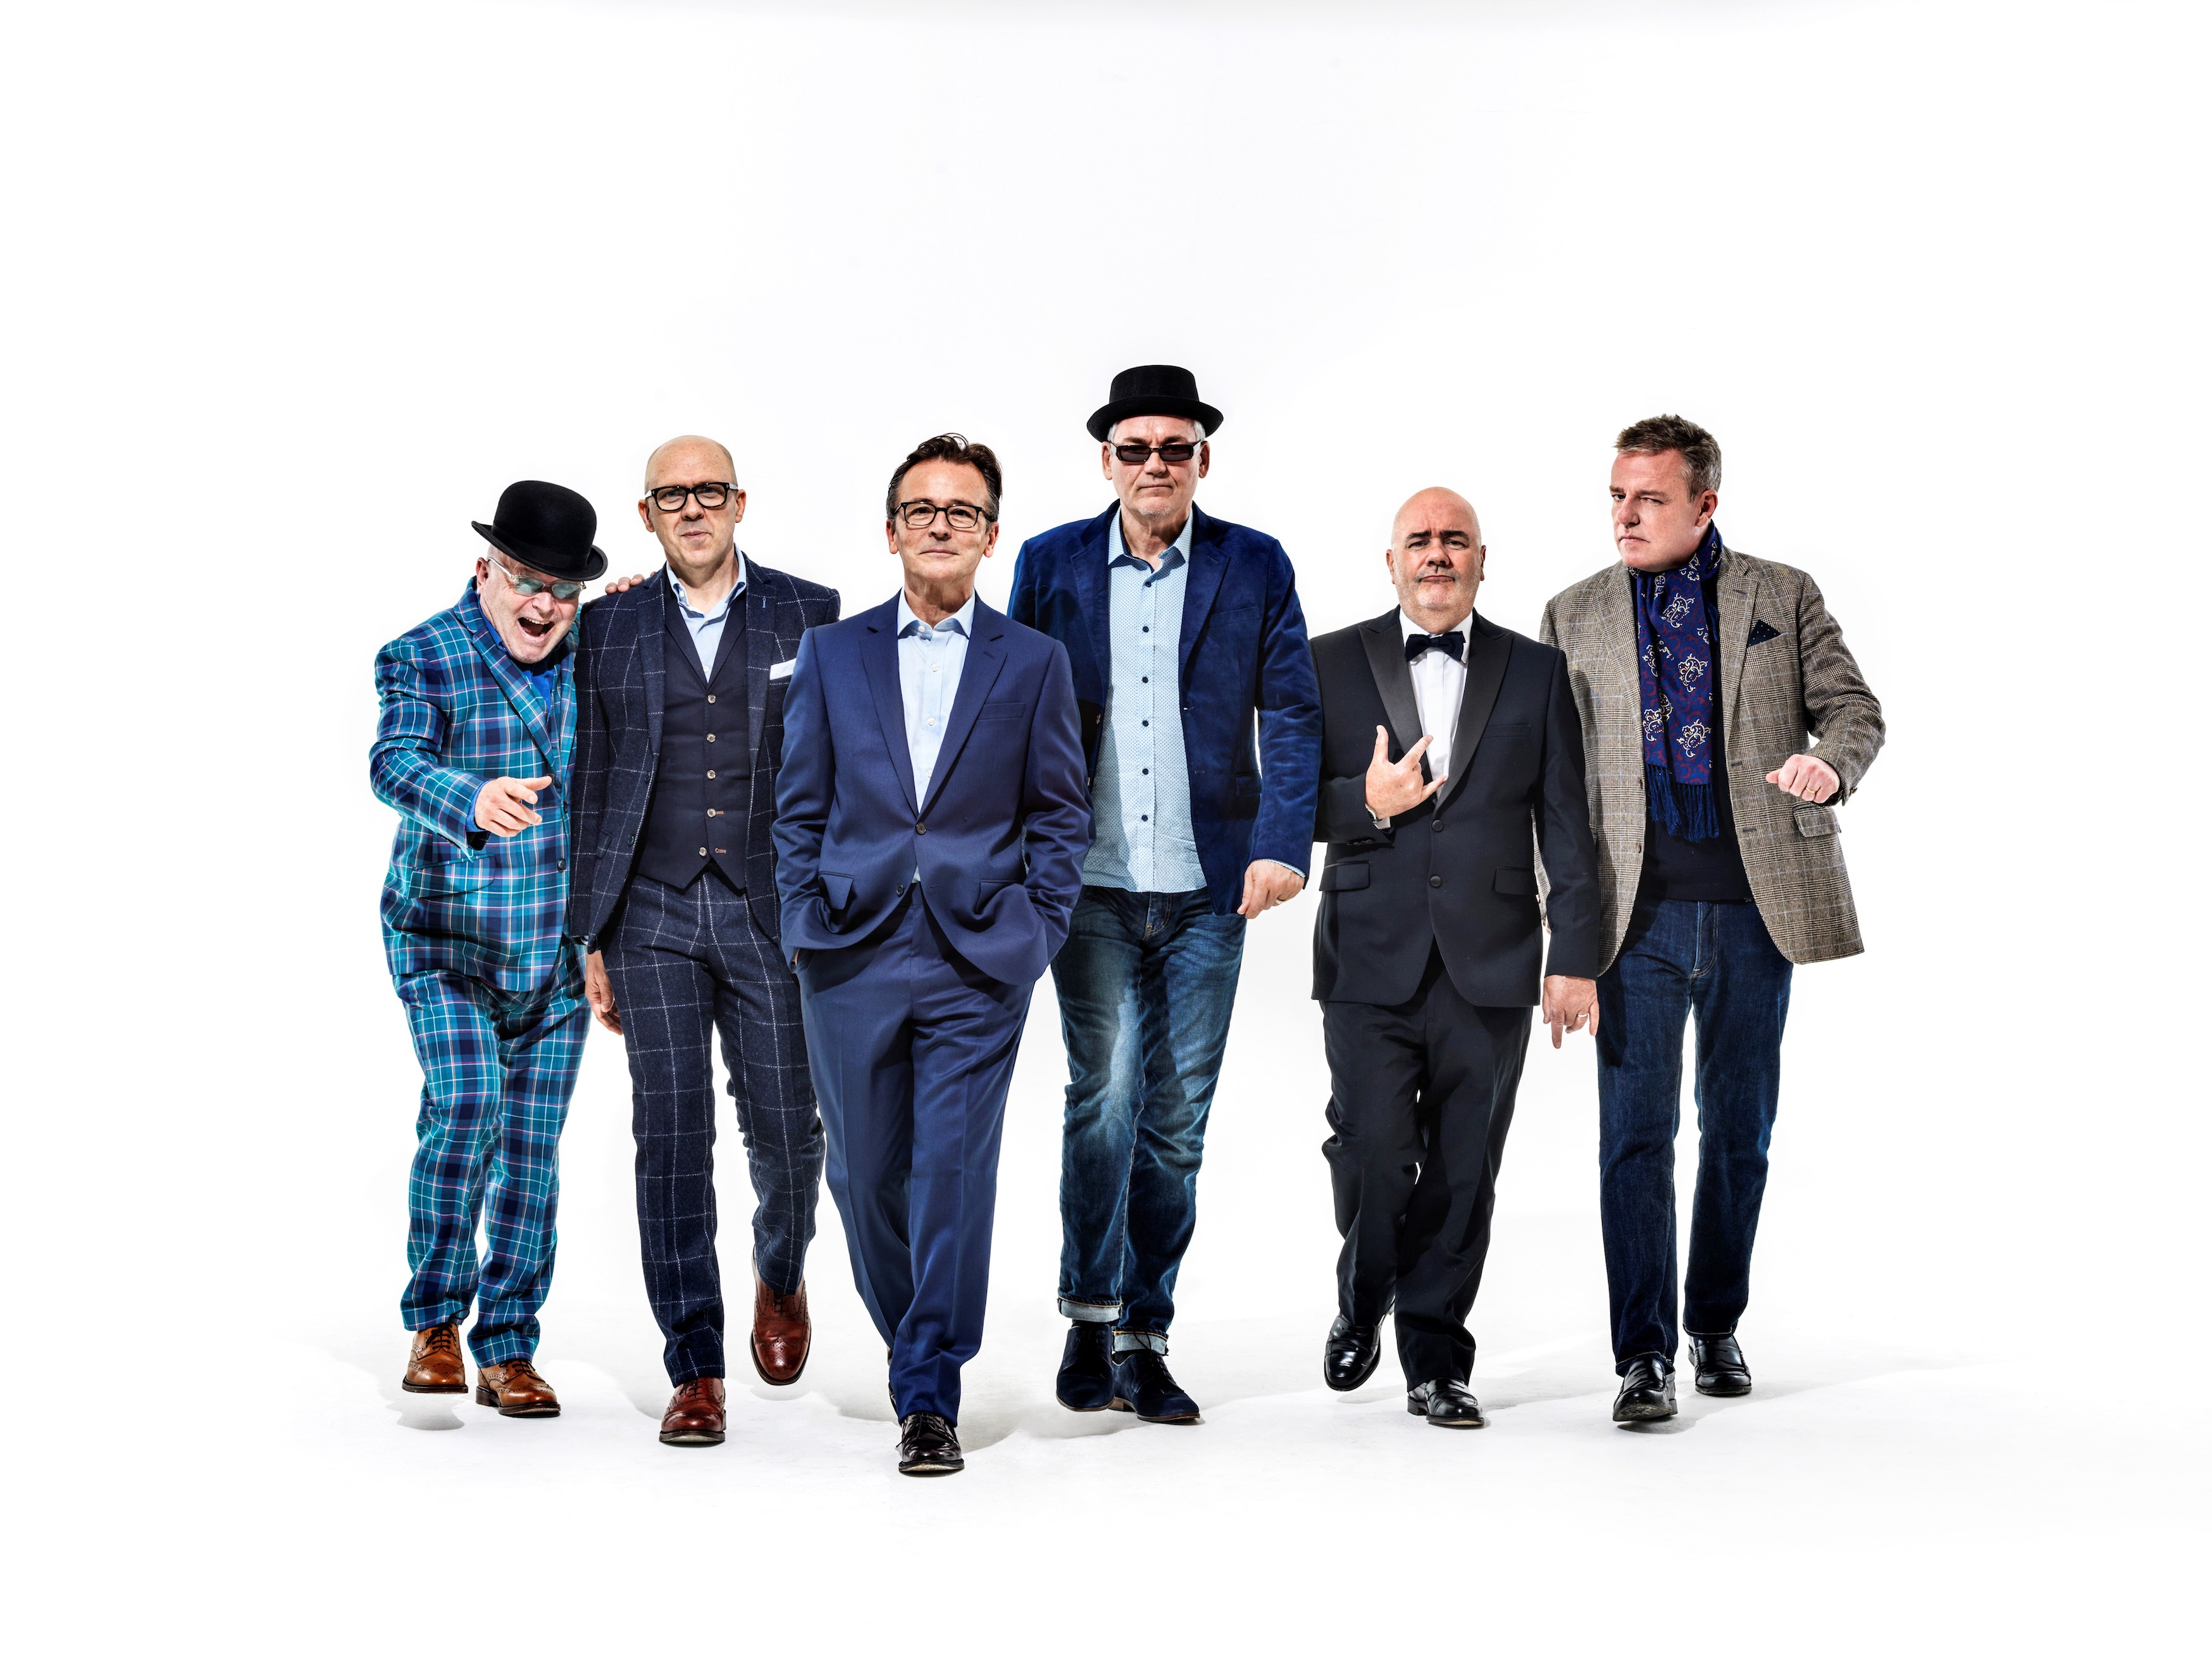 Madness to headline outdoor concert at Inverness Northern Meeting Park.